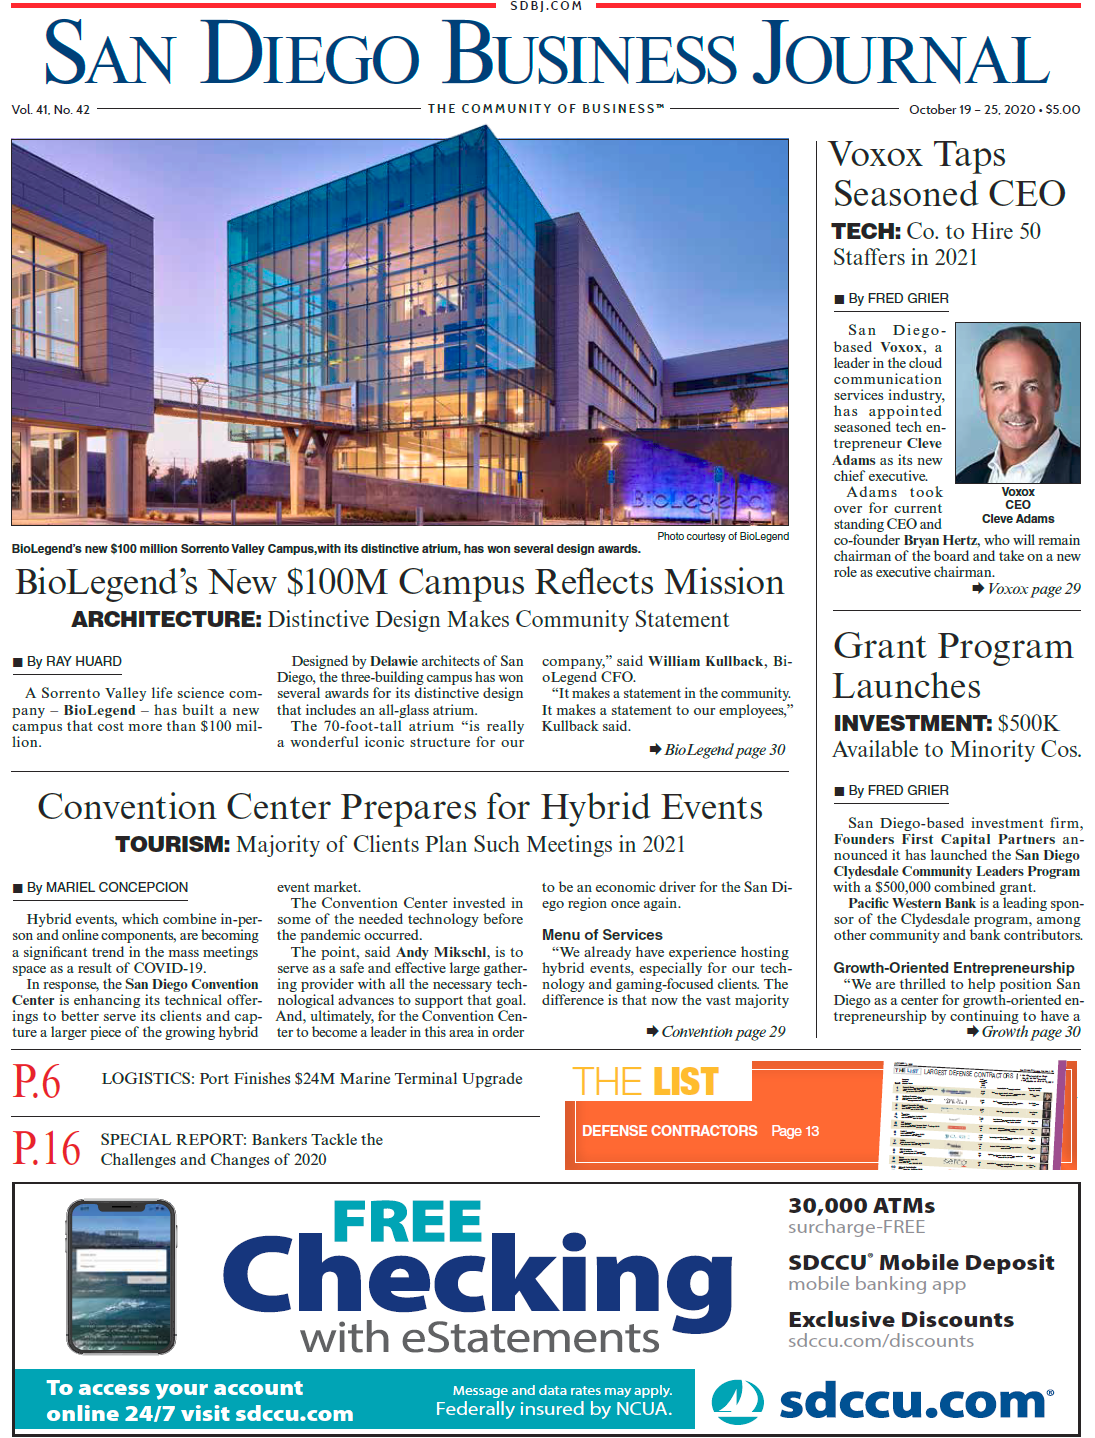 SDBJ Digital Edition October 19, 2020